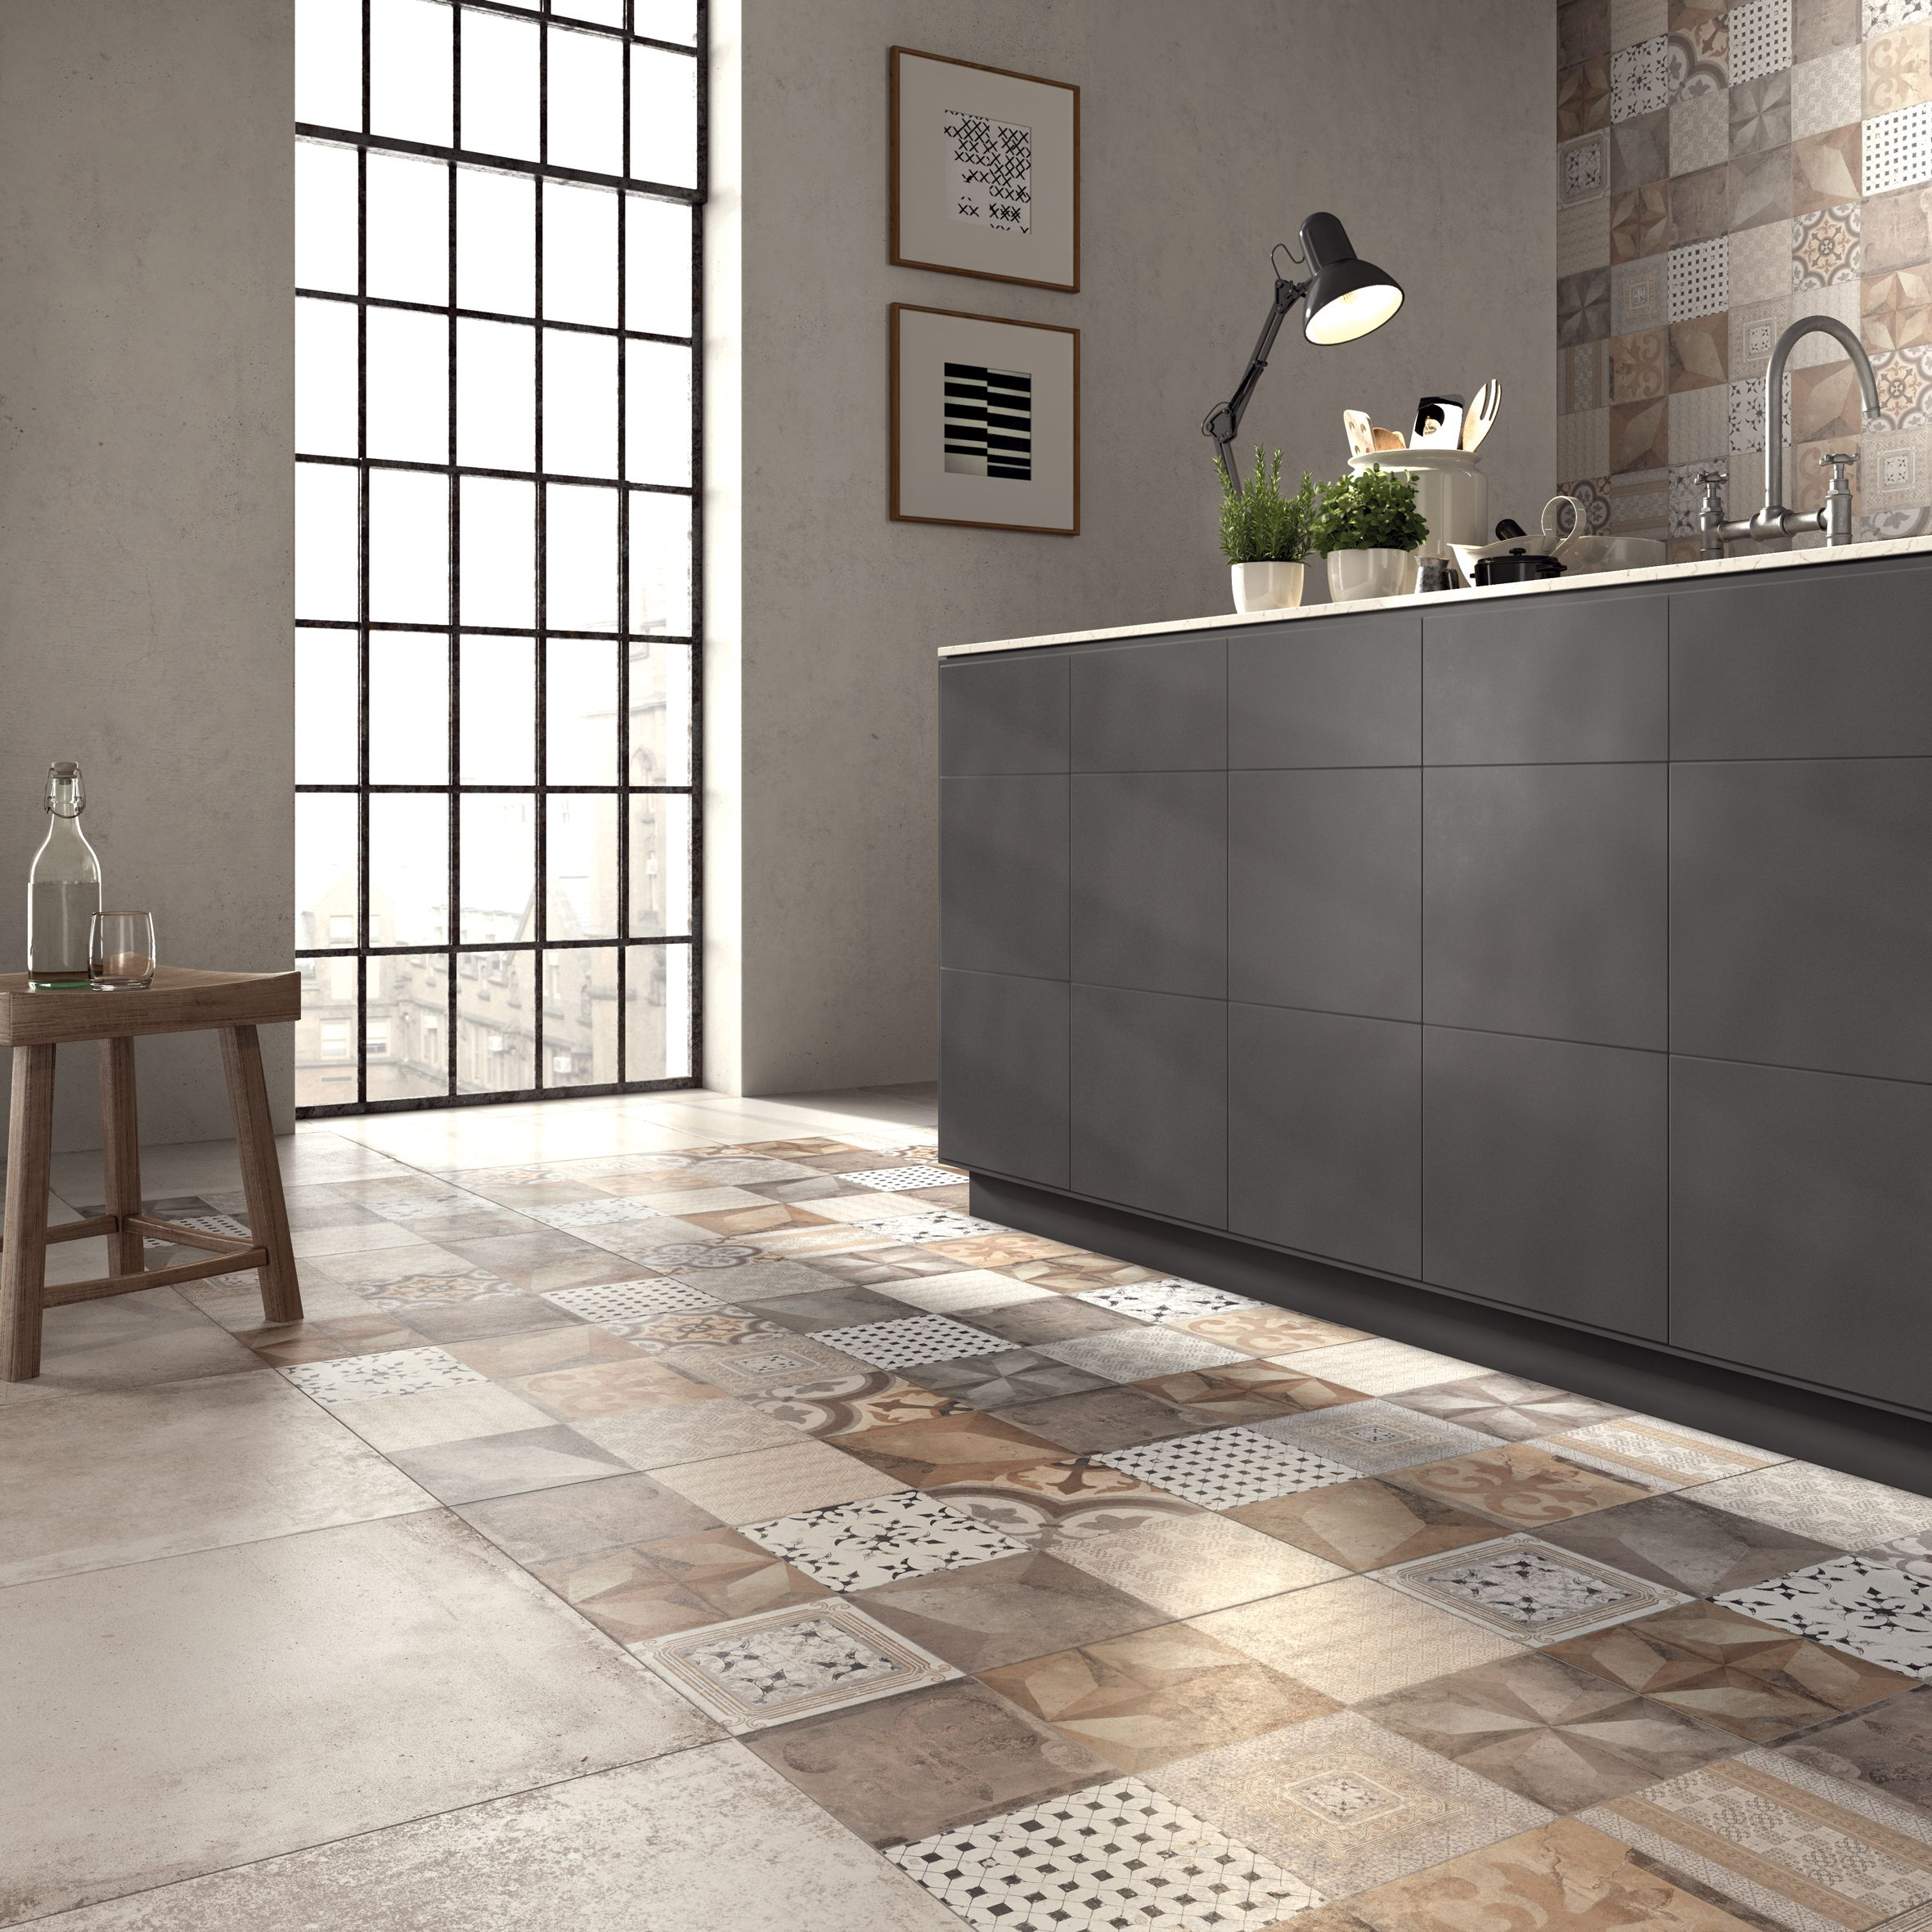 Porcelain Stoneware Wall/floor Tiles UNIKA By ABK Industrie Ceramiche